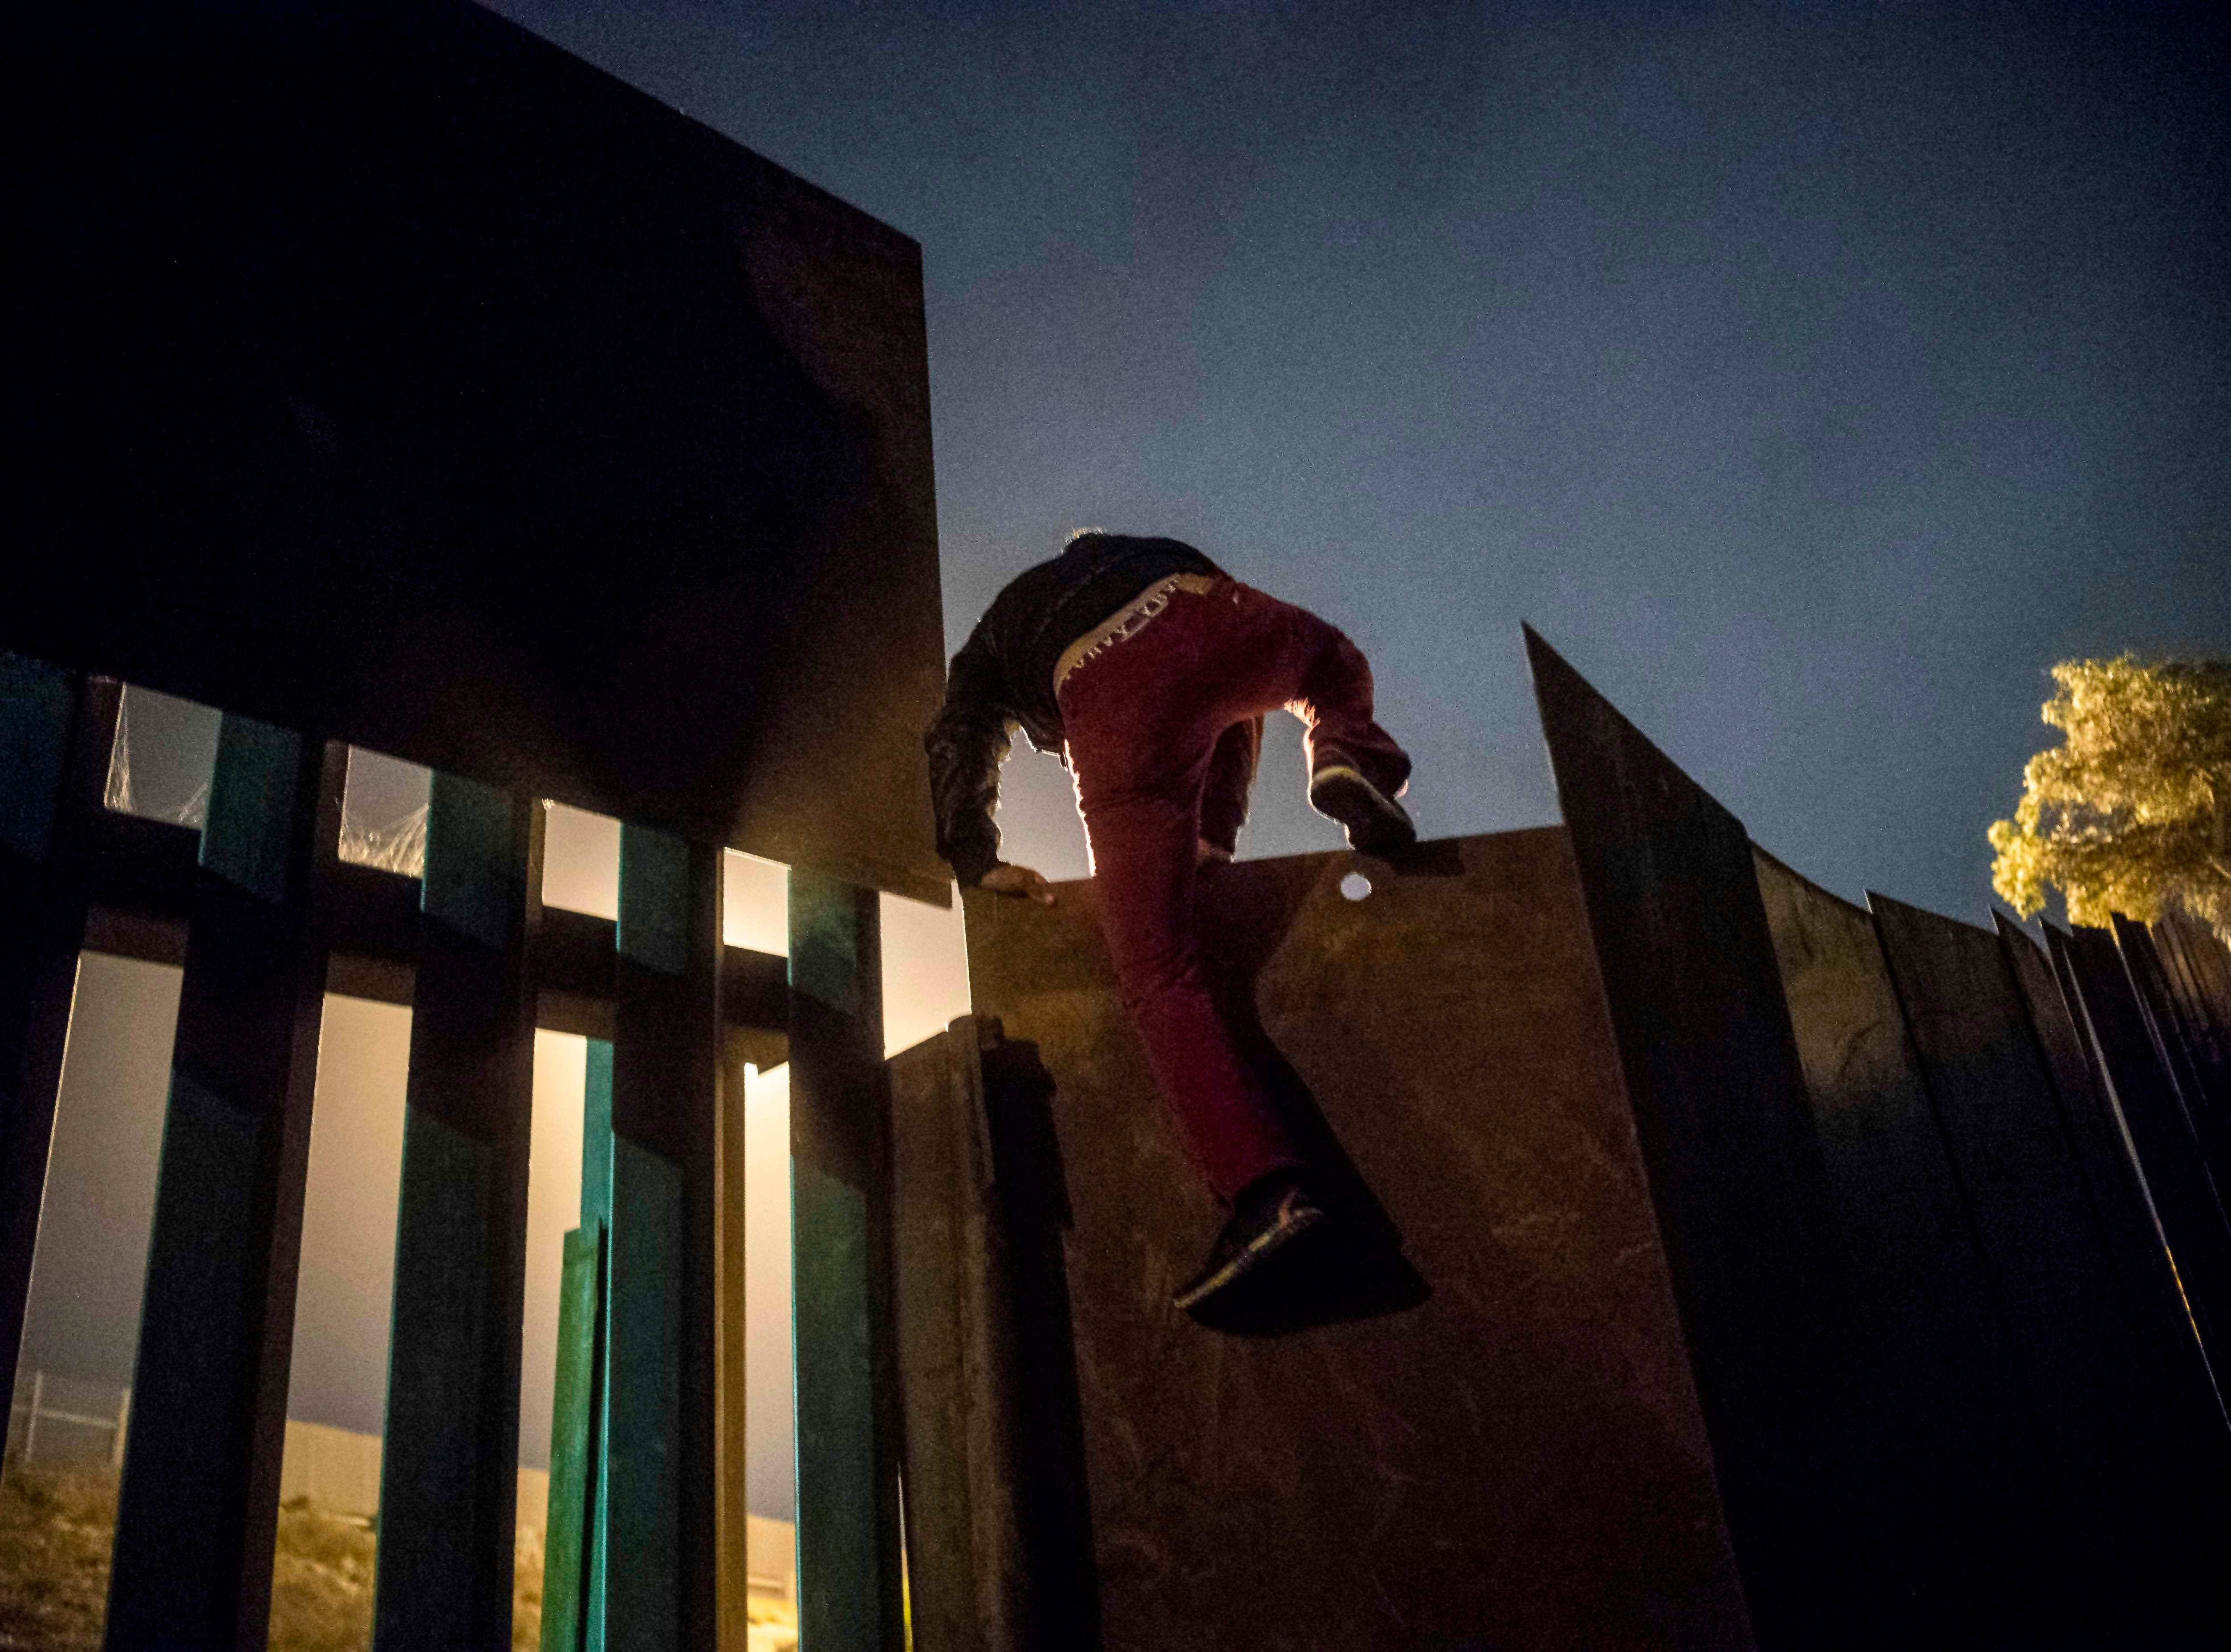 A Central American migrant who trekked for over a month across Central America and Mexico with a caravan in the hopes of reaching the United States, climbs the US-Mexico border fence to cross illegally from Playas de Tijuana, Baja California State, Mexico, to San Diego, Calif., US, on Nov. 30, 2018.